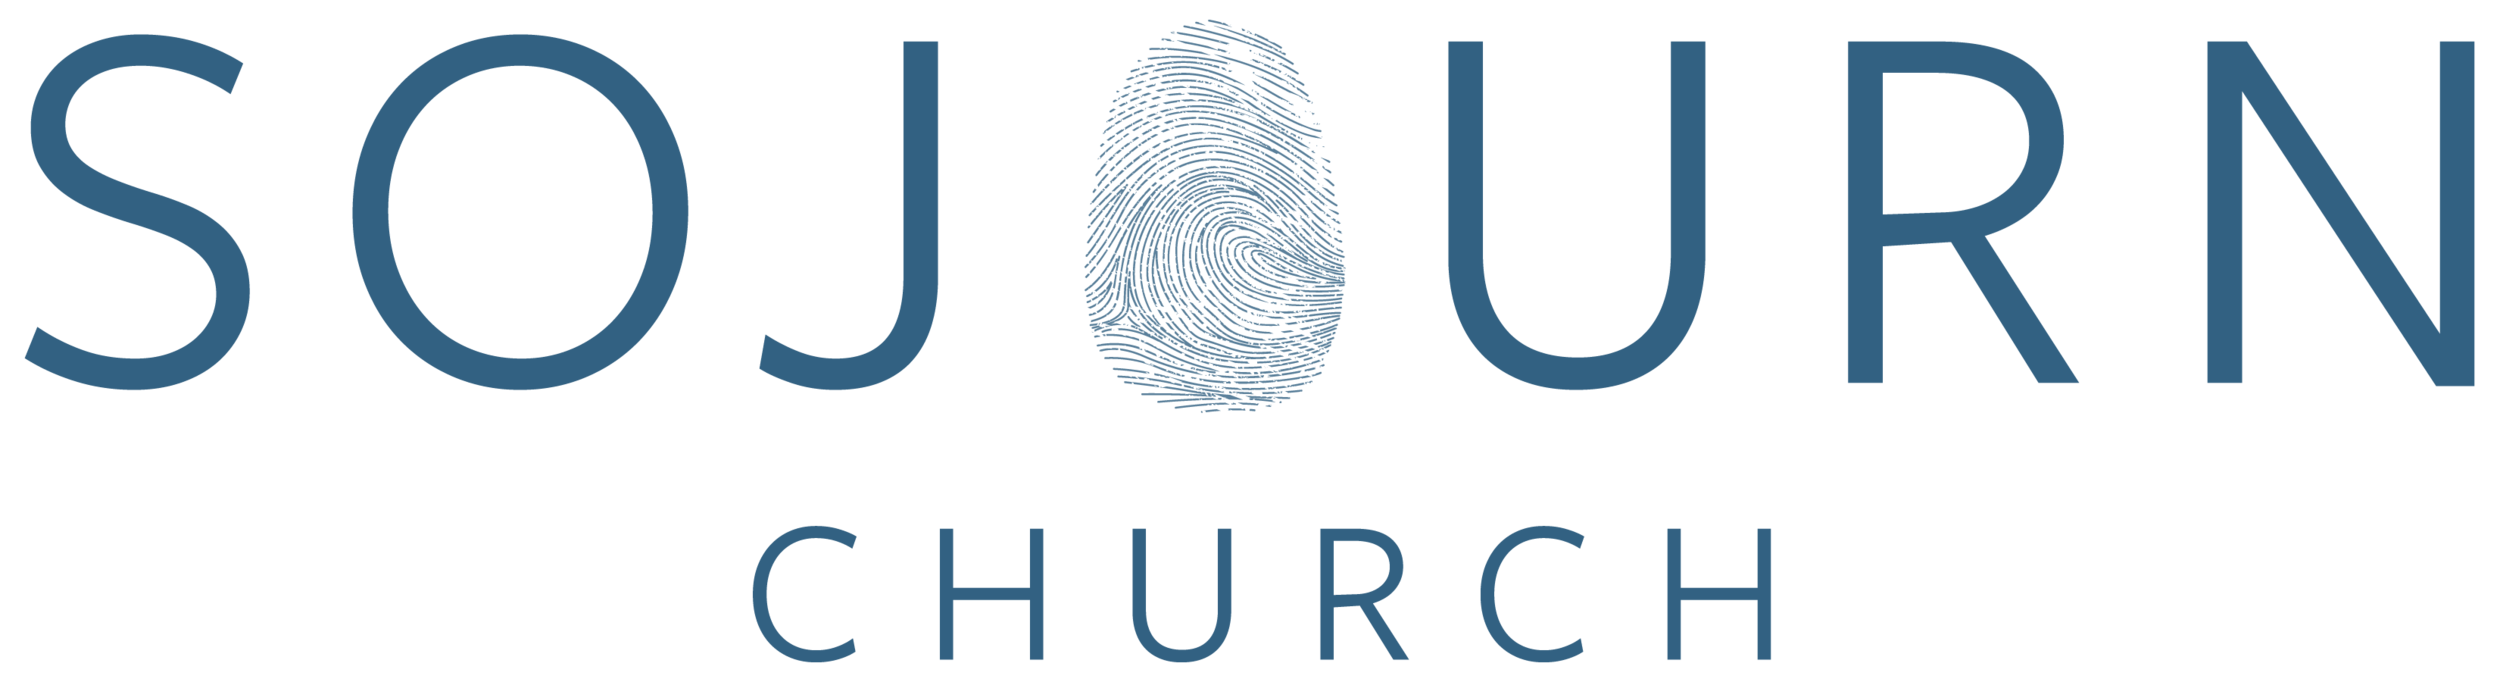 SOJOURN-with-church-blue.png